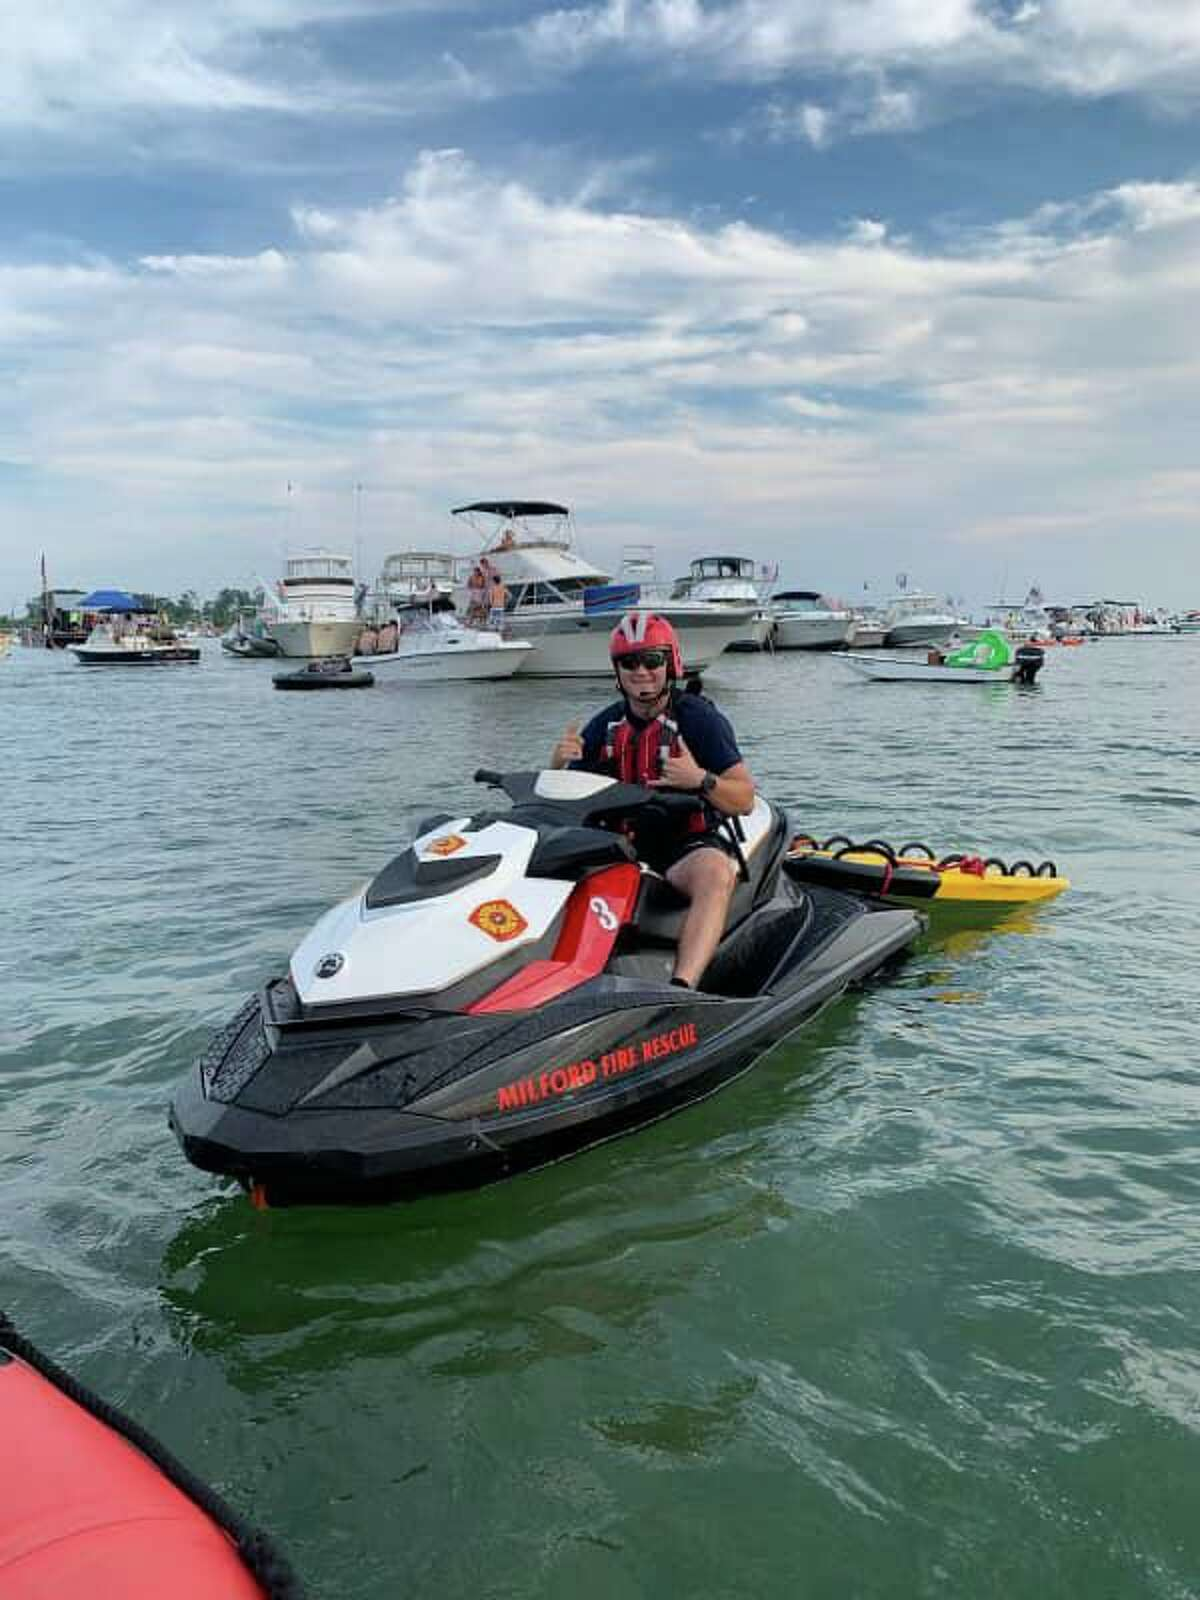 Crews responded to several incidents in the water off Milford, Conn., on Saturday, July 24, 2021.